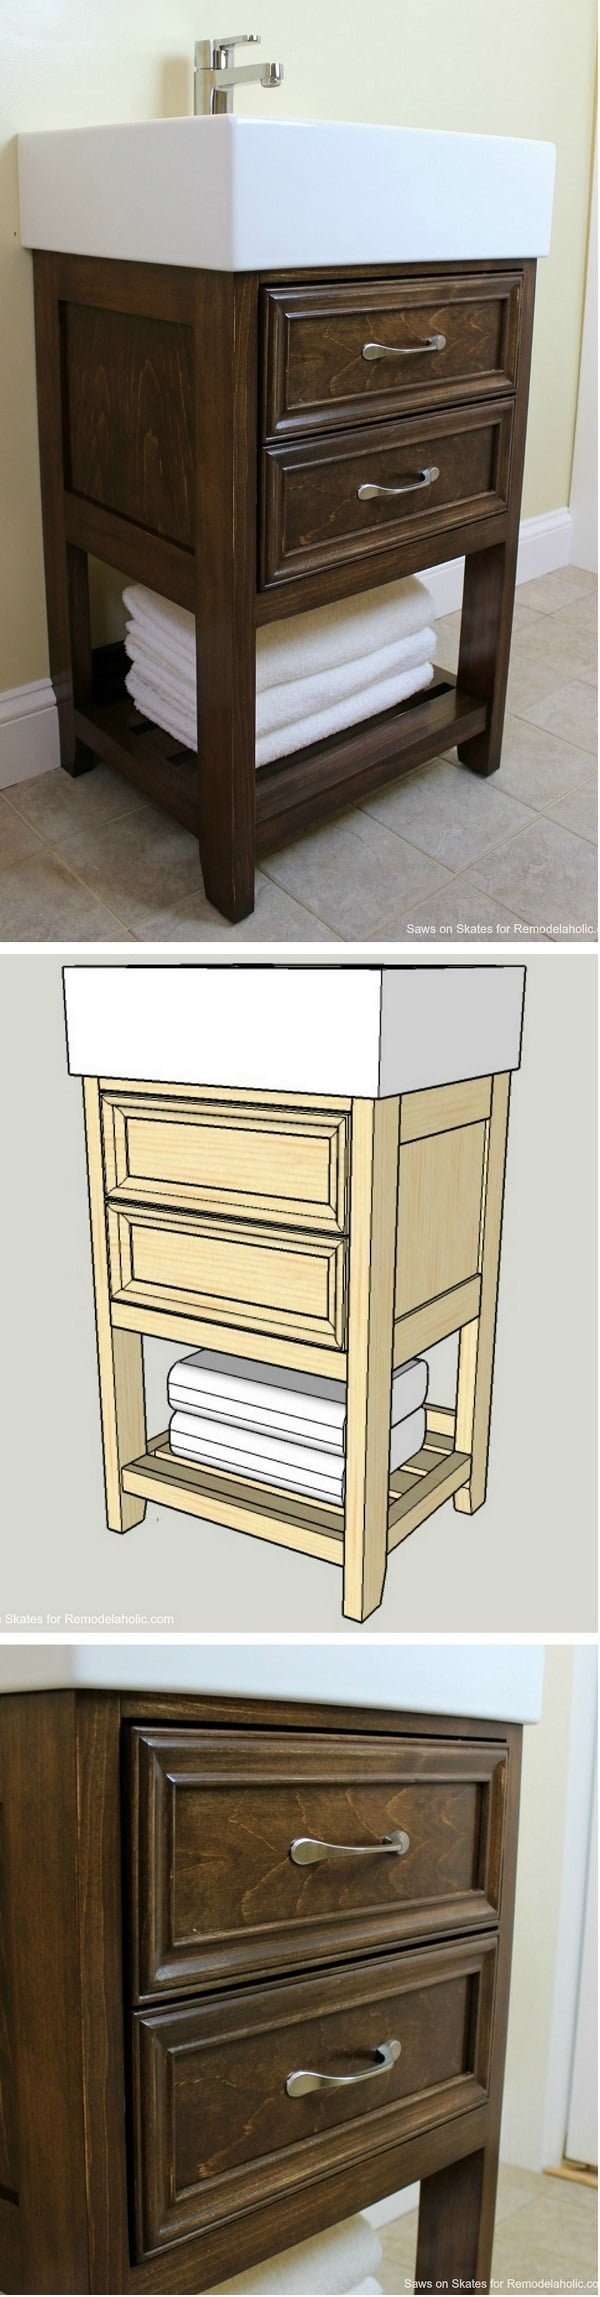 How to make a #DIY sink vanity IKEA hack